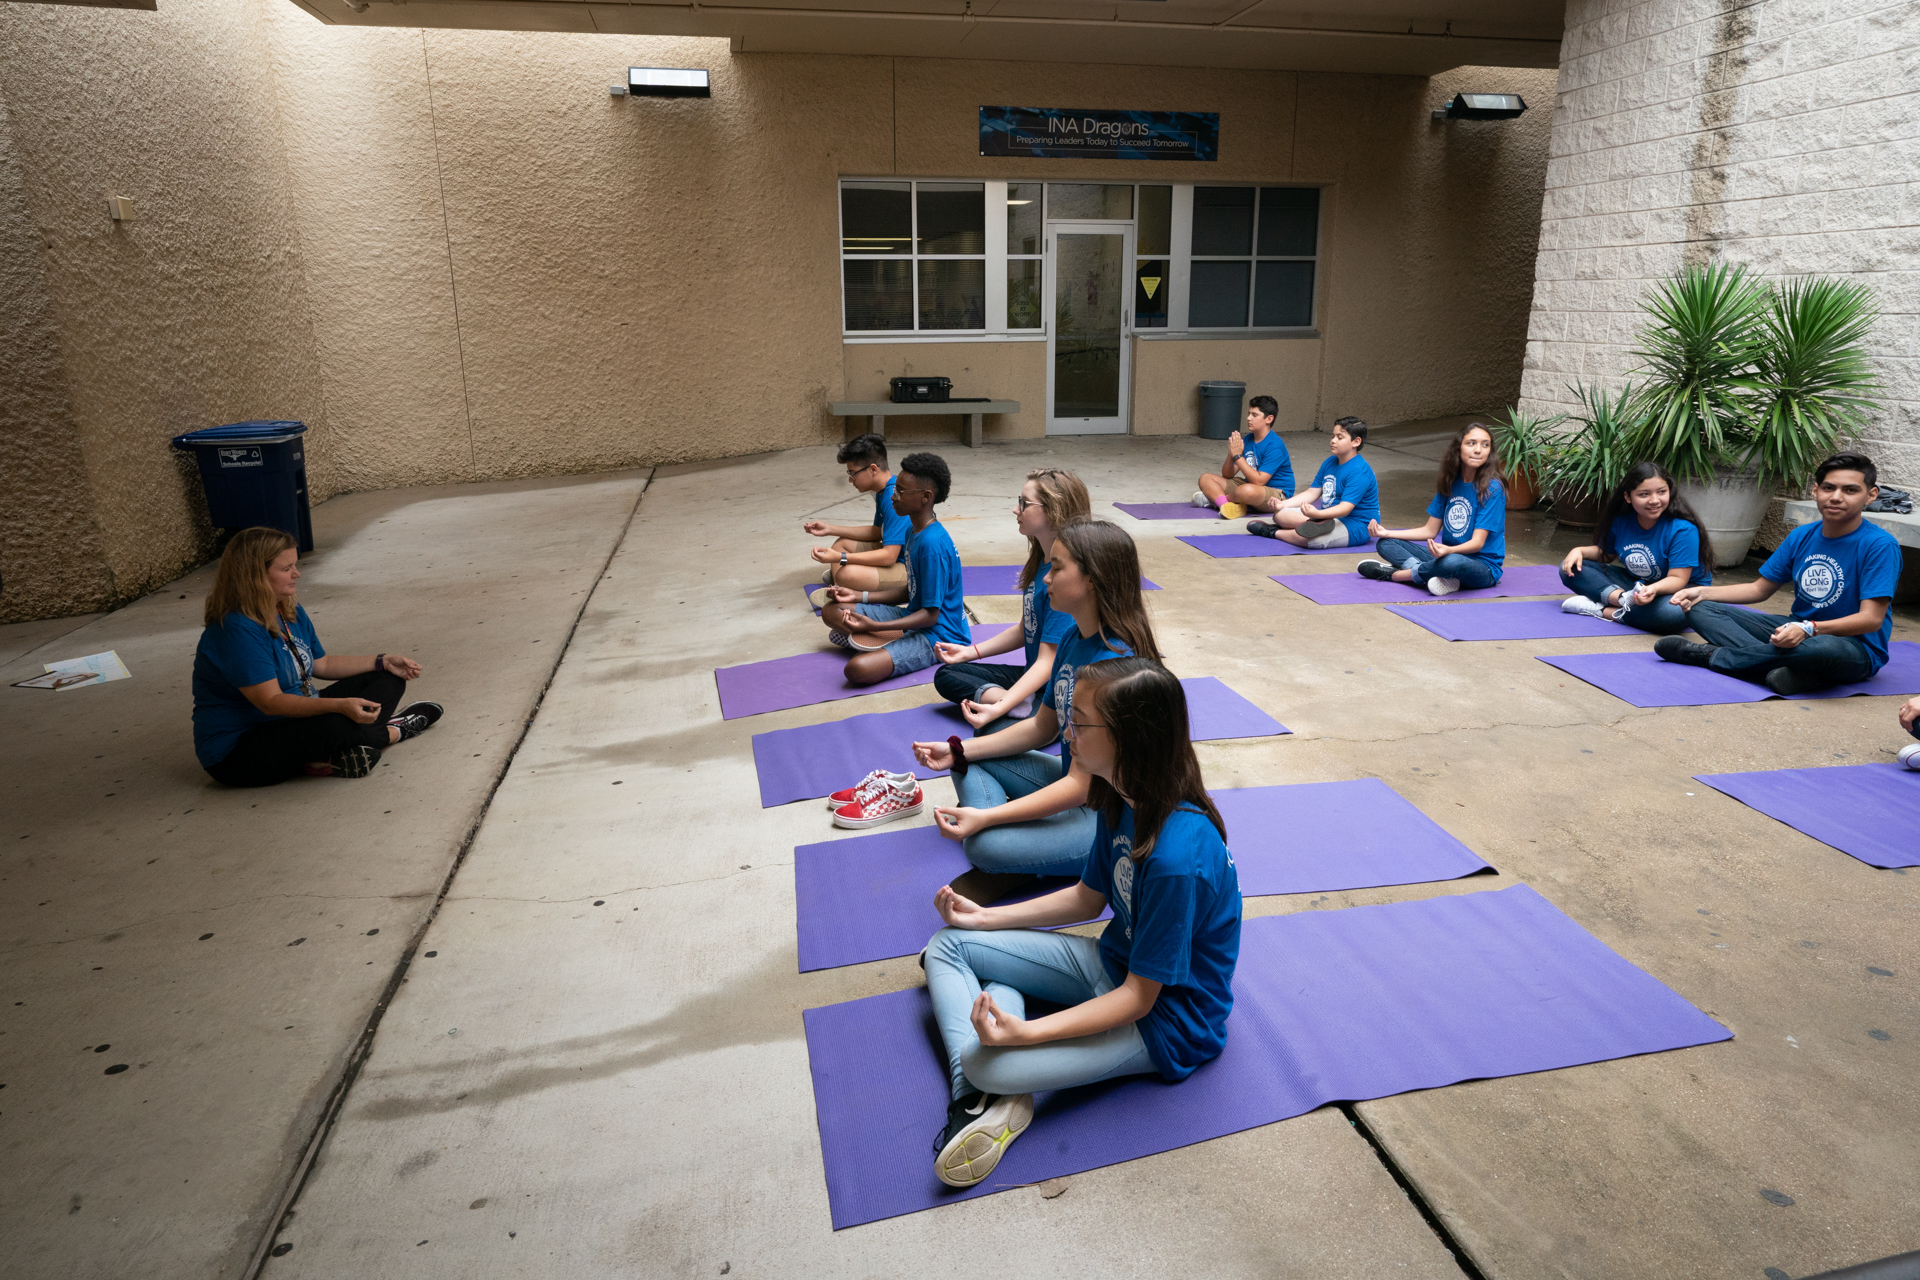 0018_2018-McLain-Sharecare-mid-school-yoga-357-2.jpg